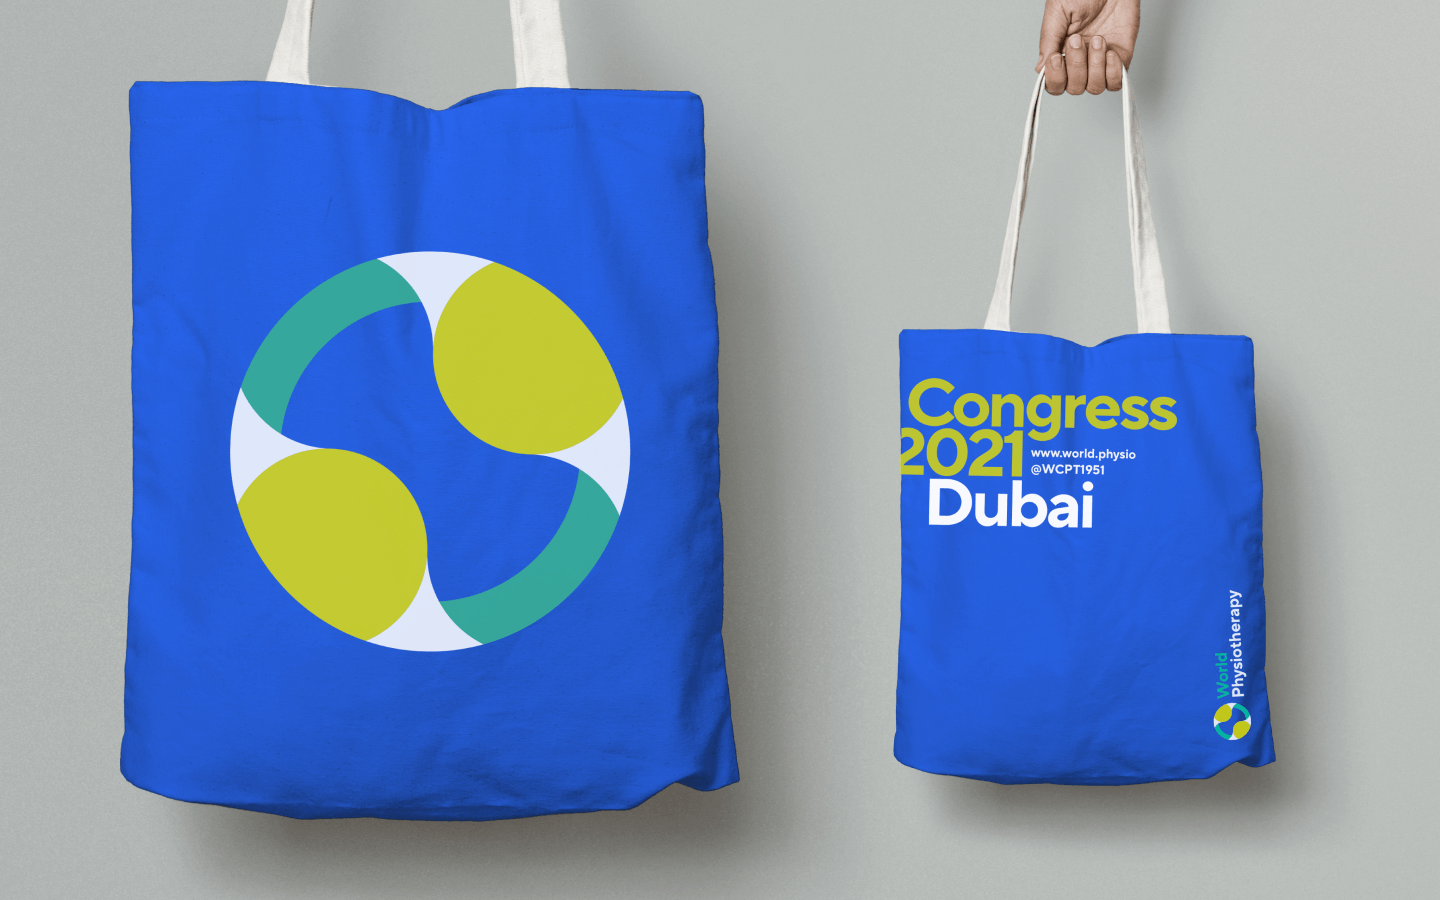 How the World Physiotherapy brand is applied to a tote bag